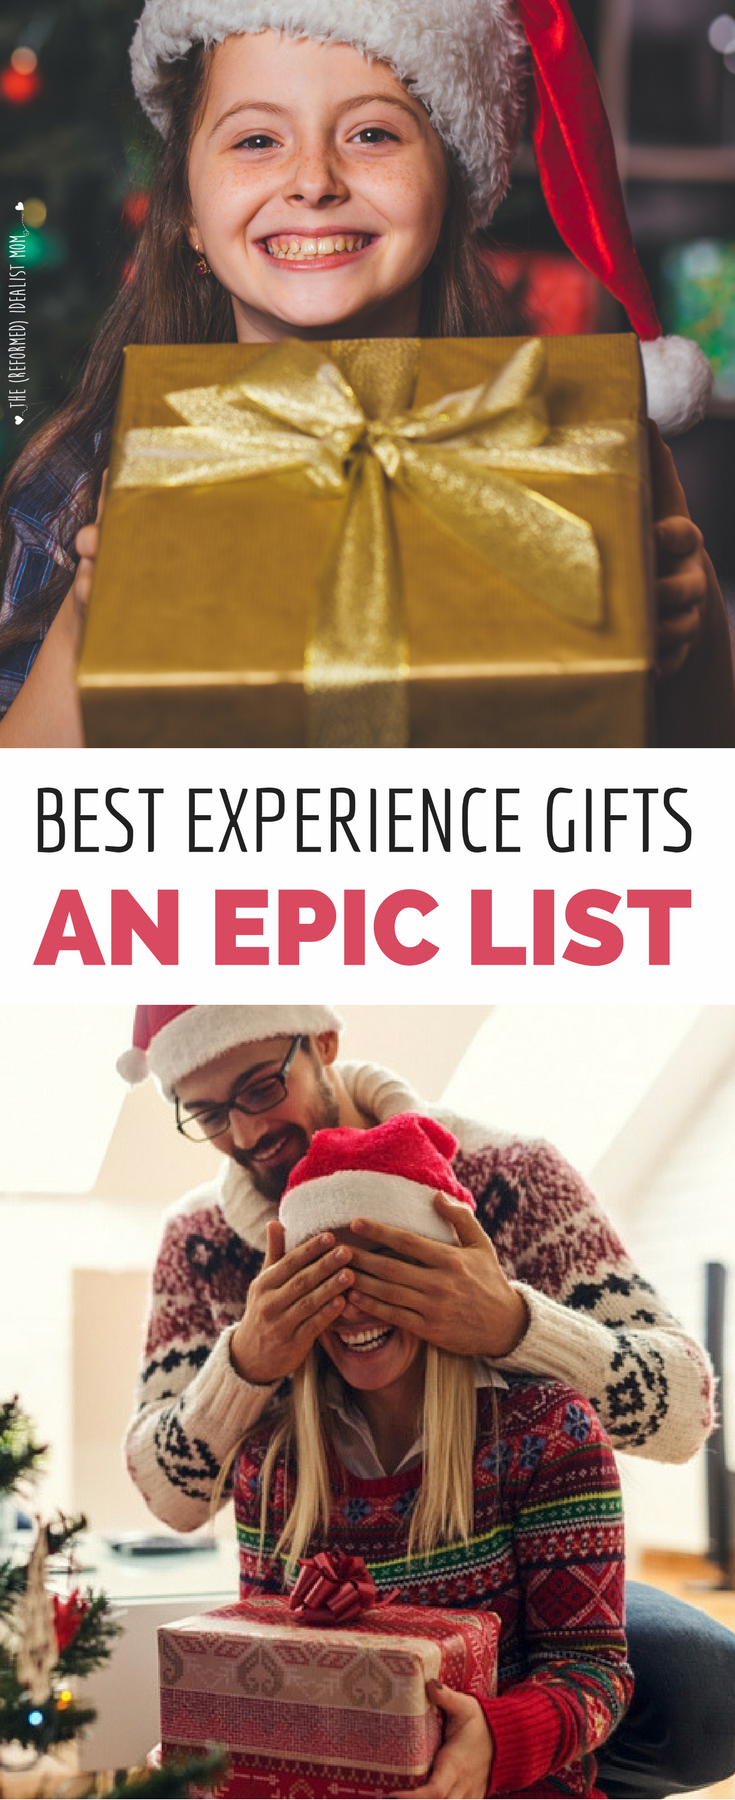 42 awesome experience gifts for kids who have too many toys | Happy ...